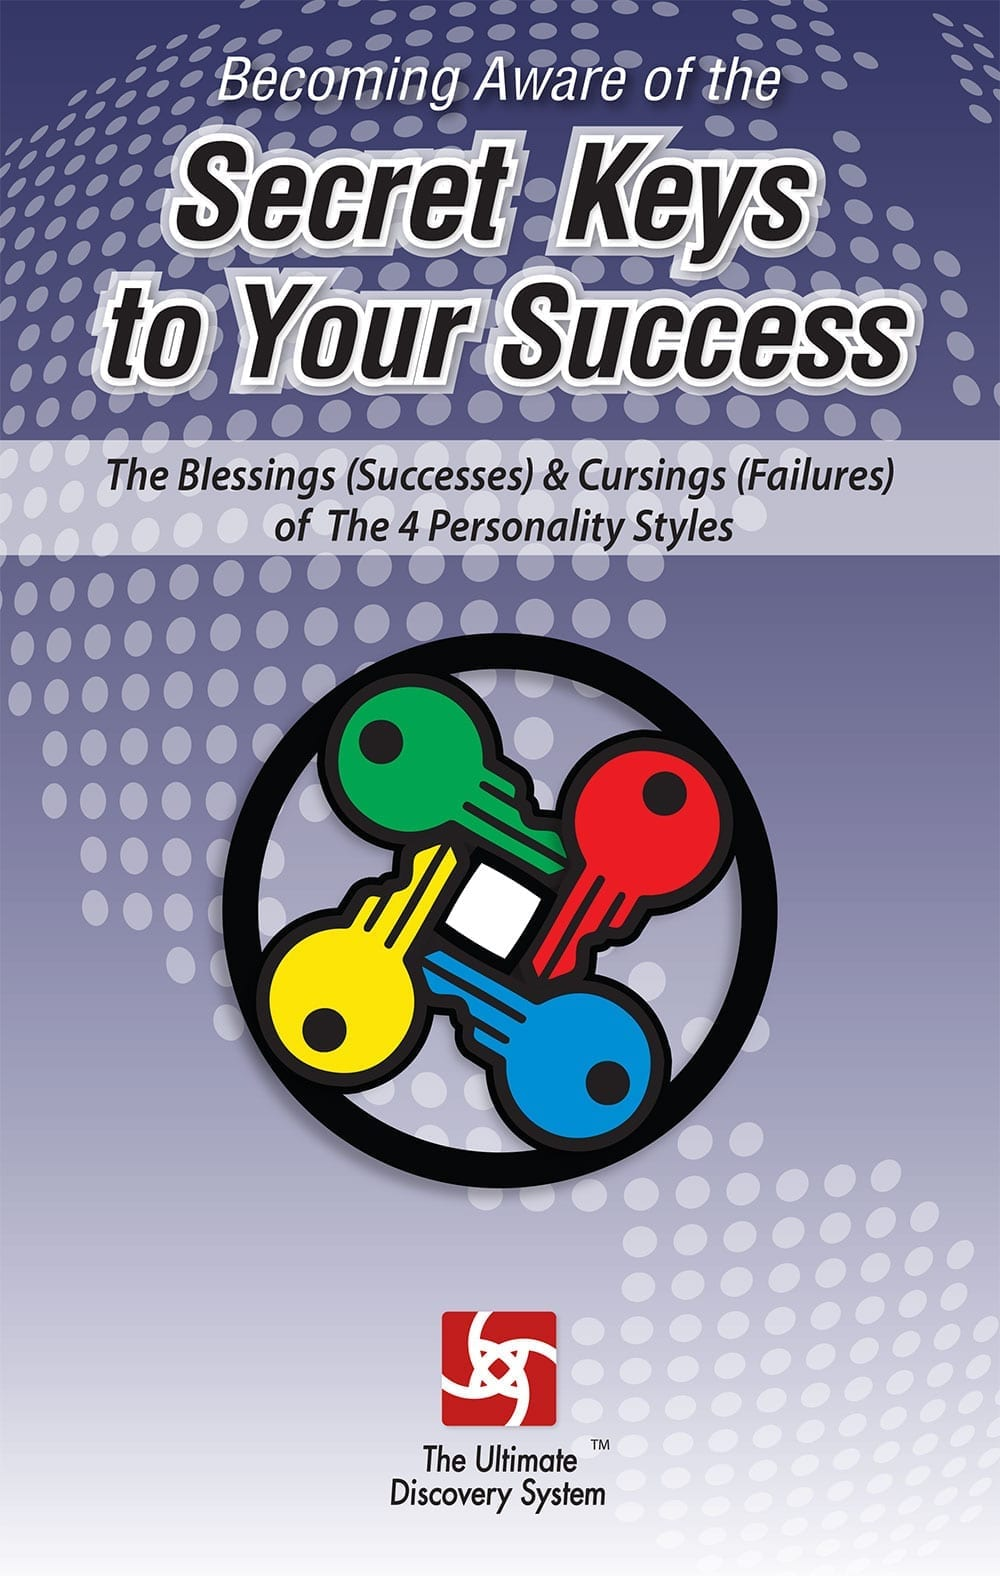 secret keys to your success booklet